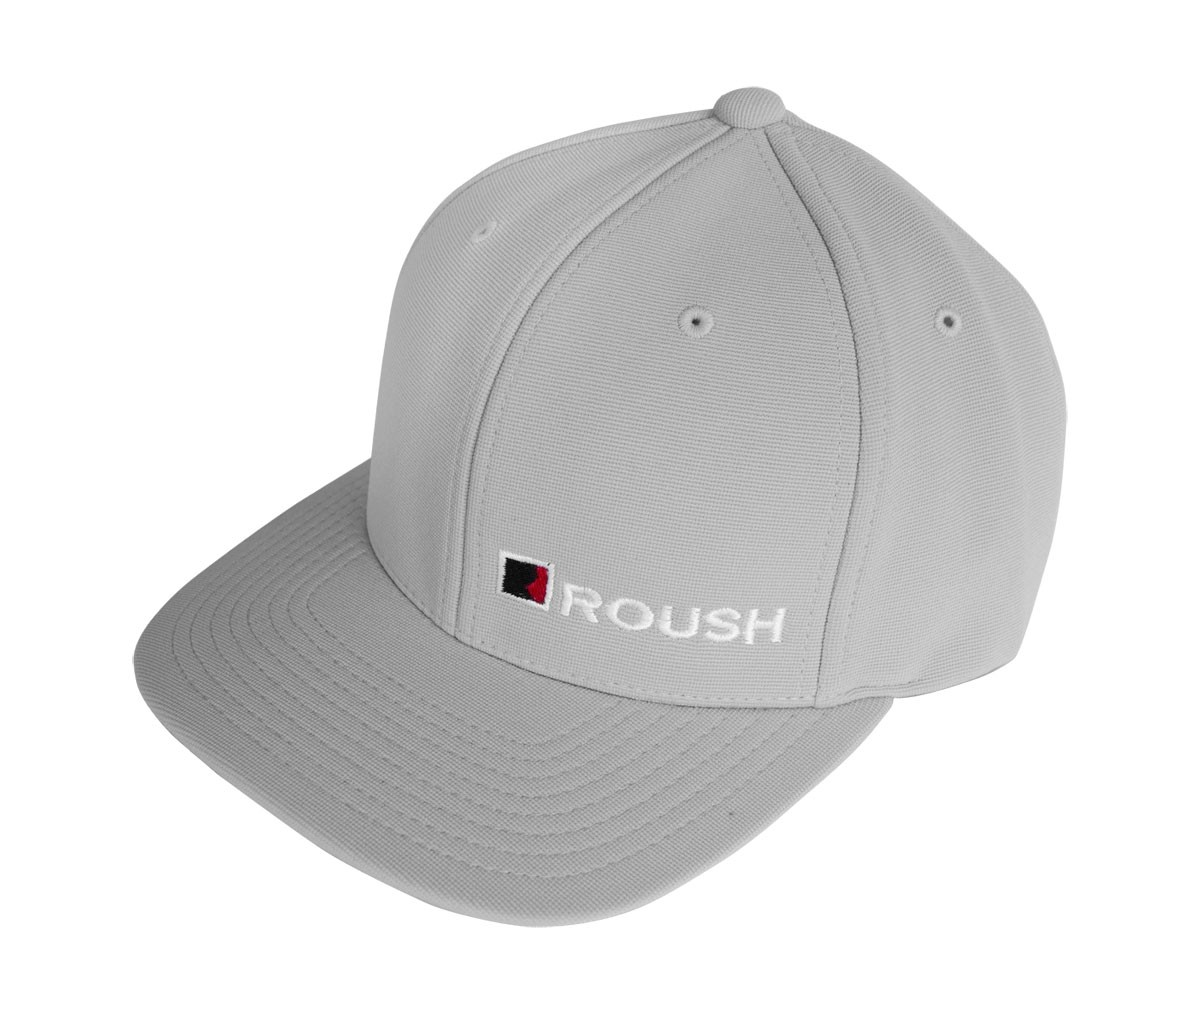 Roush Ford Mustang F150 Embroidered Grey Flat Bill Adjustable Hat Cap